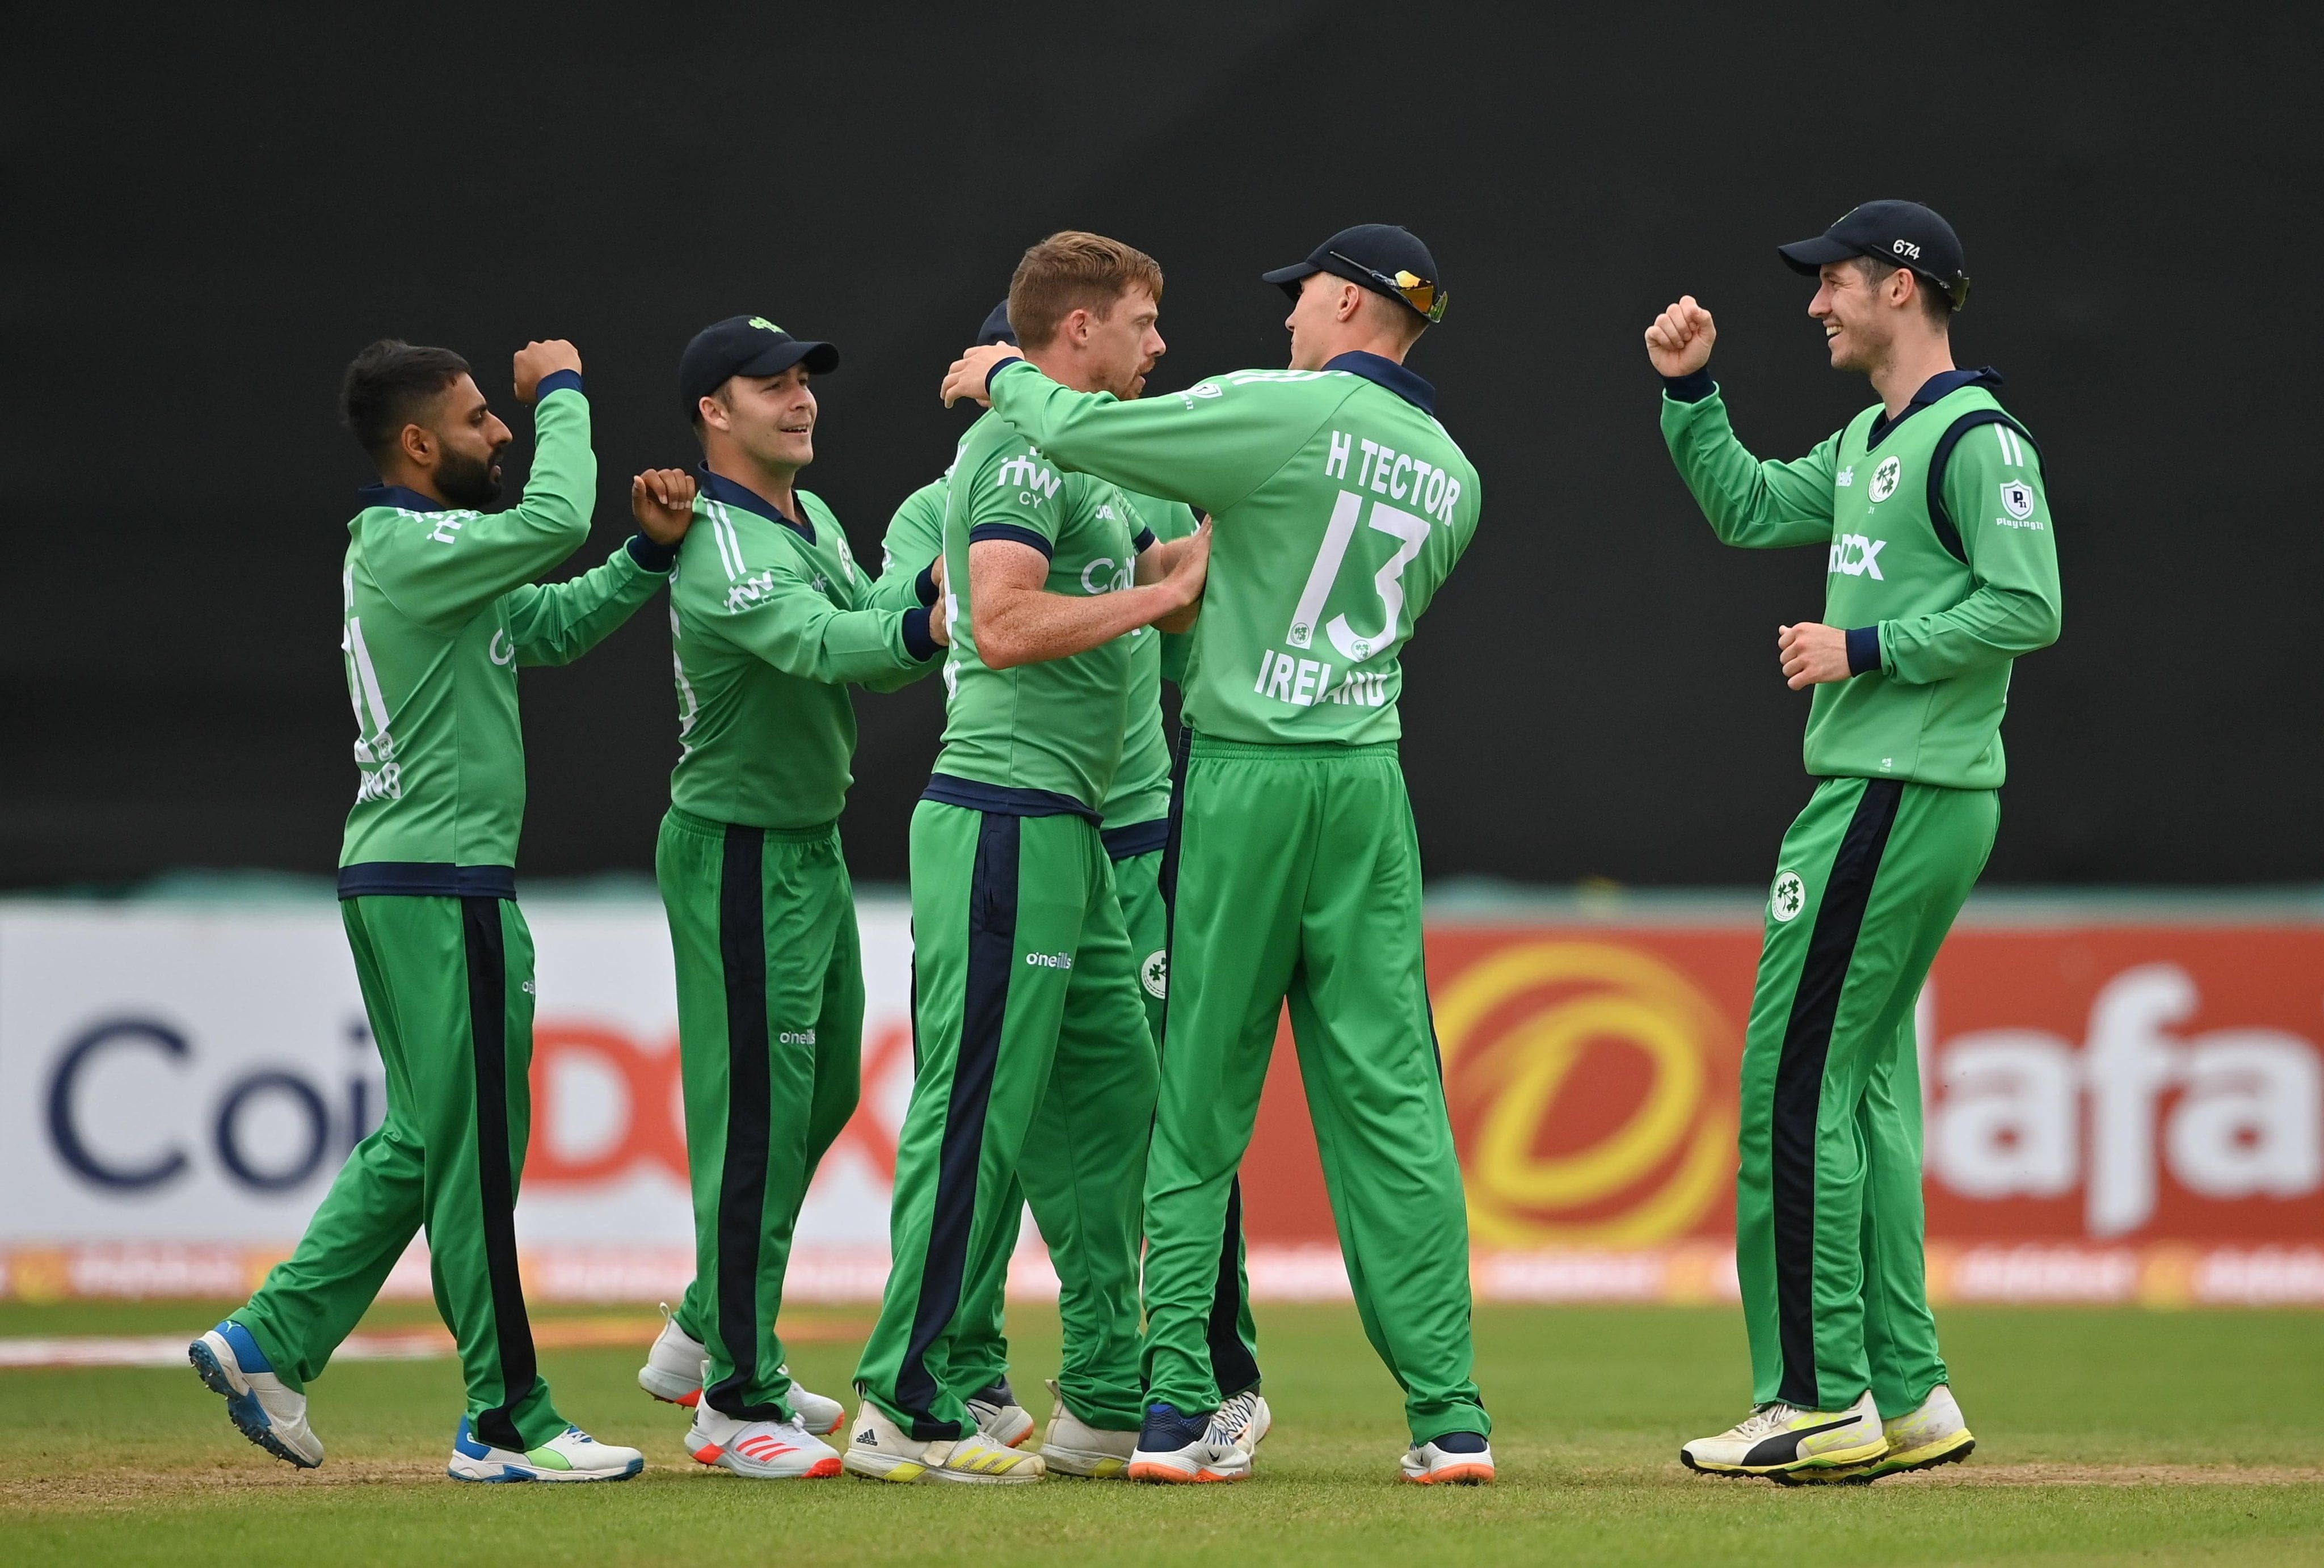 The Way Our Bowlers Bowled in The Middle And at The Death Was Amazing: Andrew Balbirnie